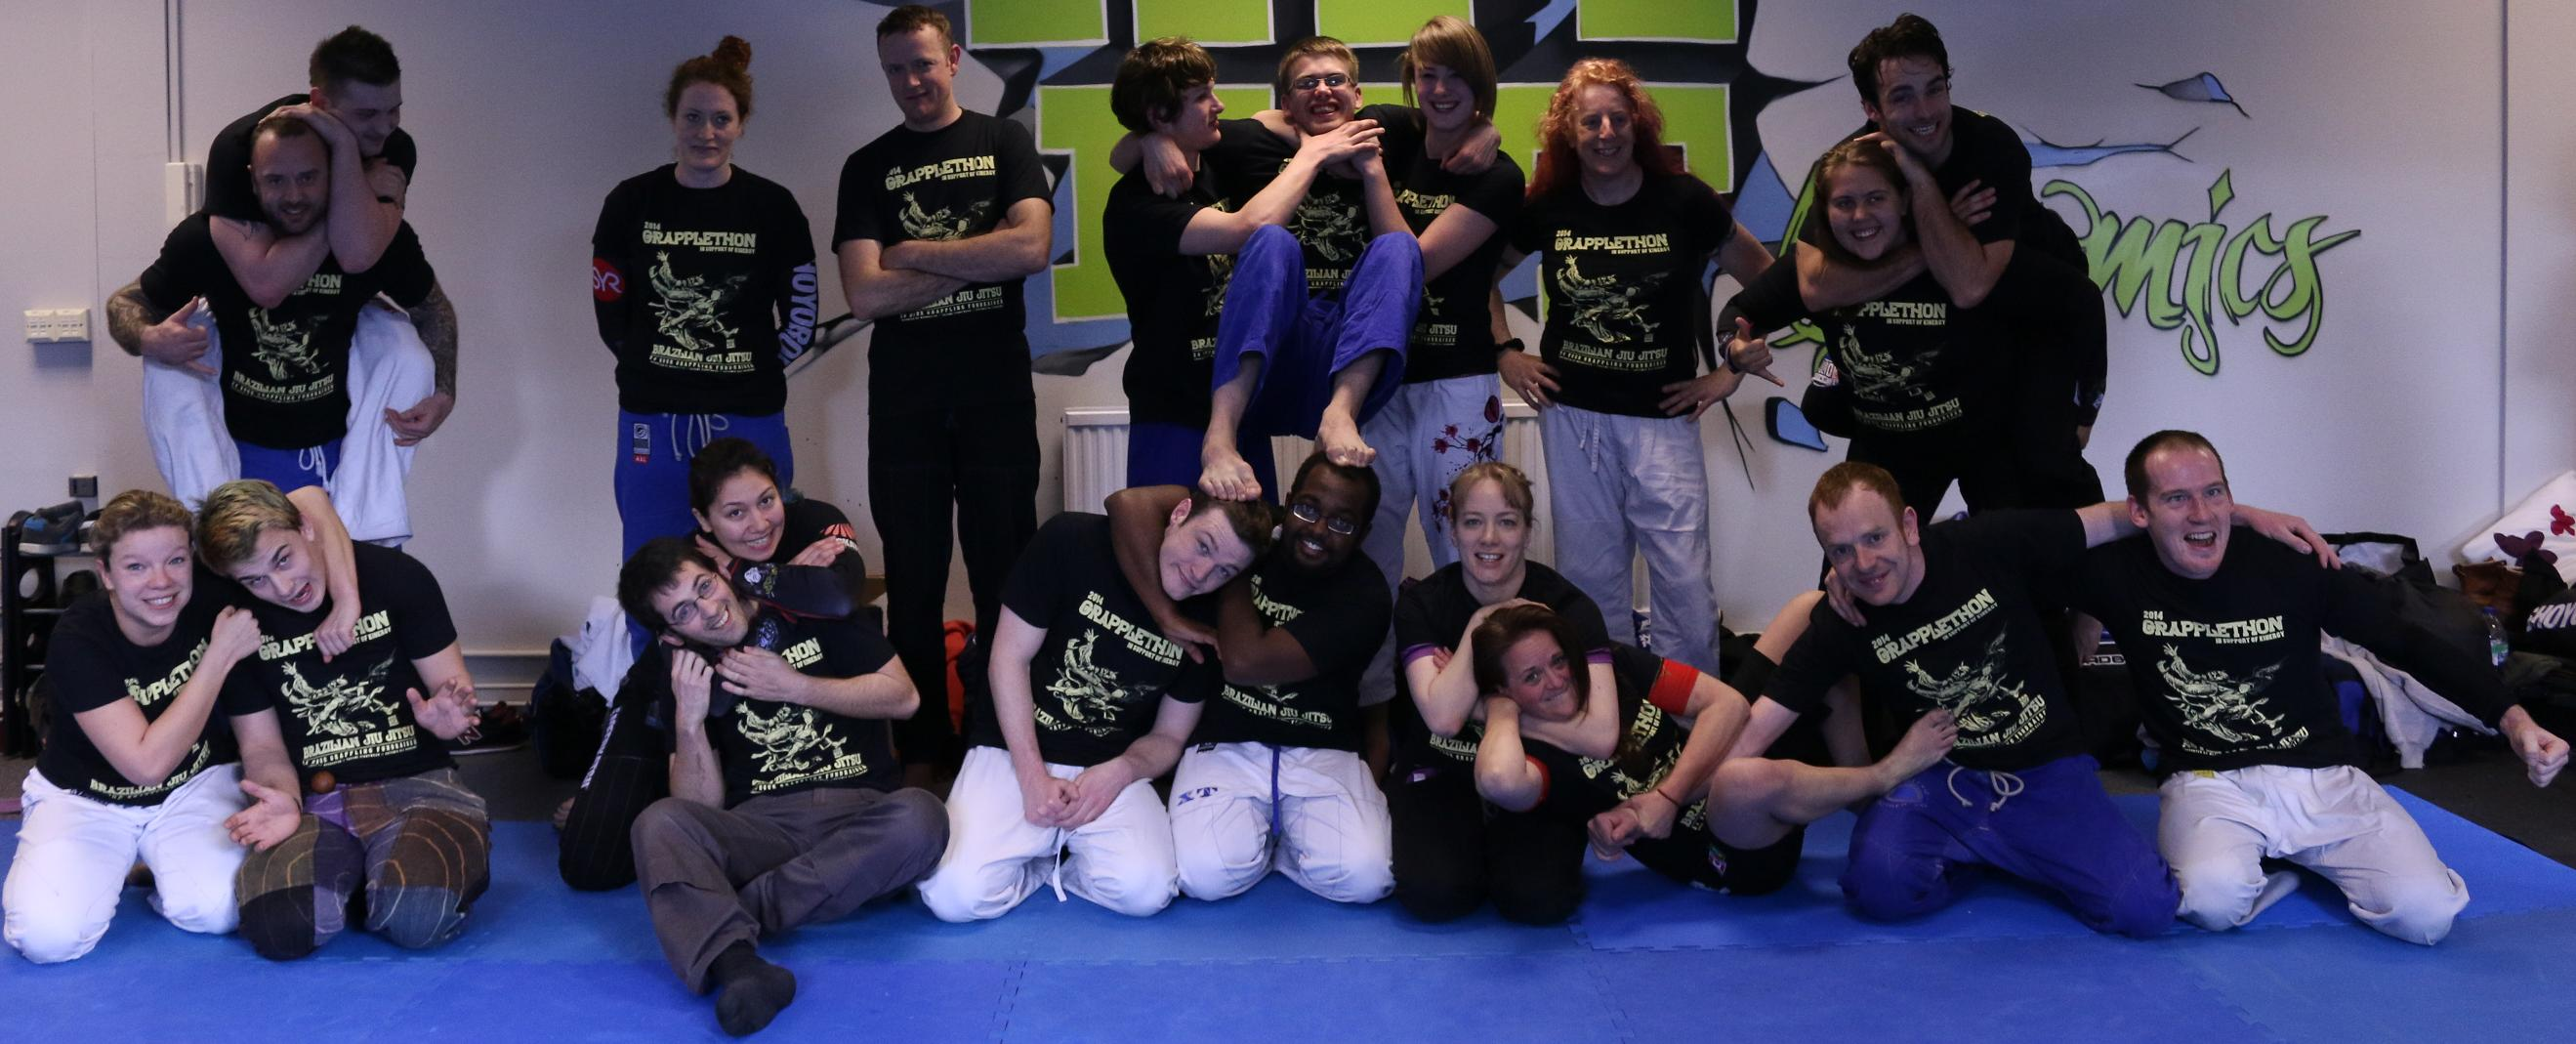 Artemis BJJ Bristol Brazilian Jiu Jitsu GrappleThon 2014 for Kinergy at Hit Fit in Longwell Green